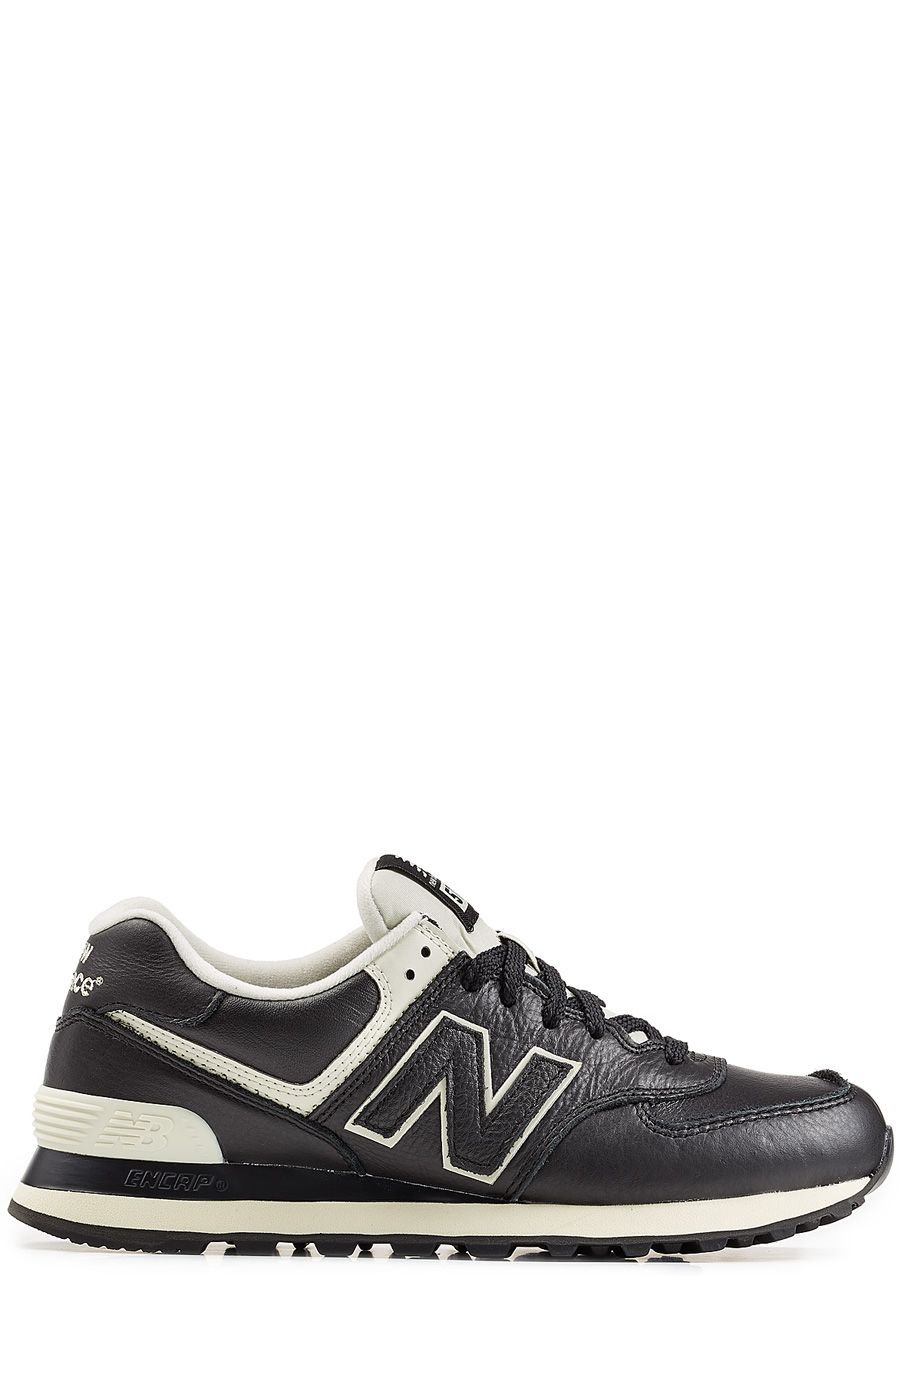 e6a4a5c9b2 NEW BALANCE Leather Sneakers. #newbalance #shoes #sneakers | New ...